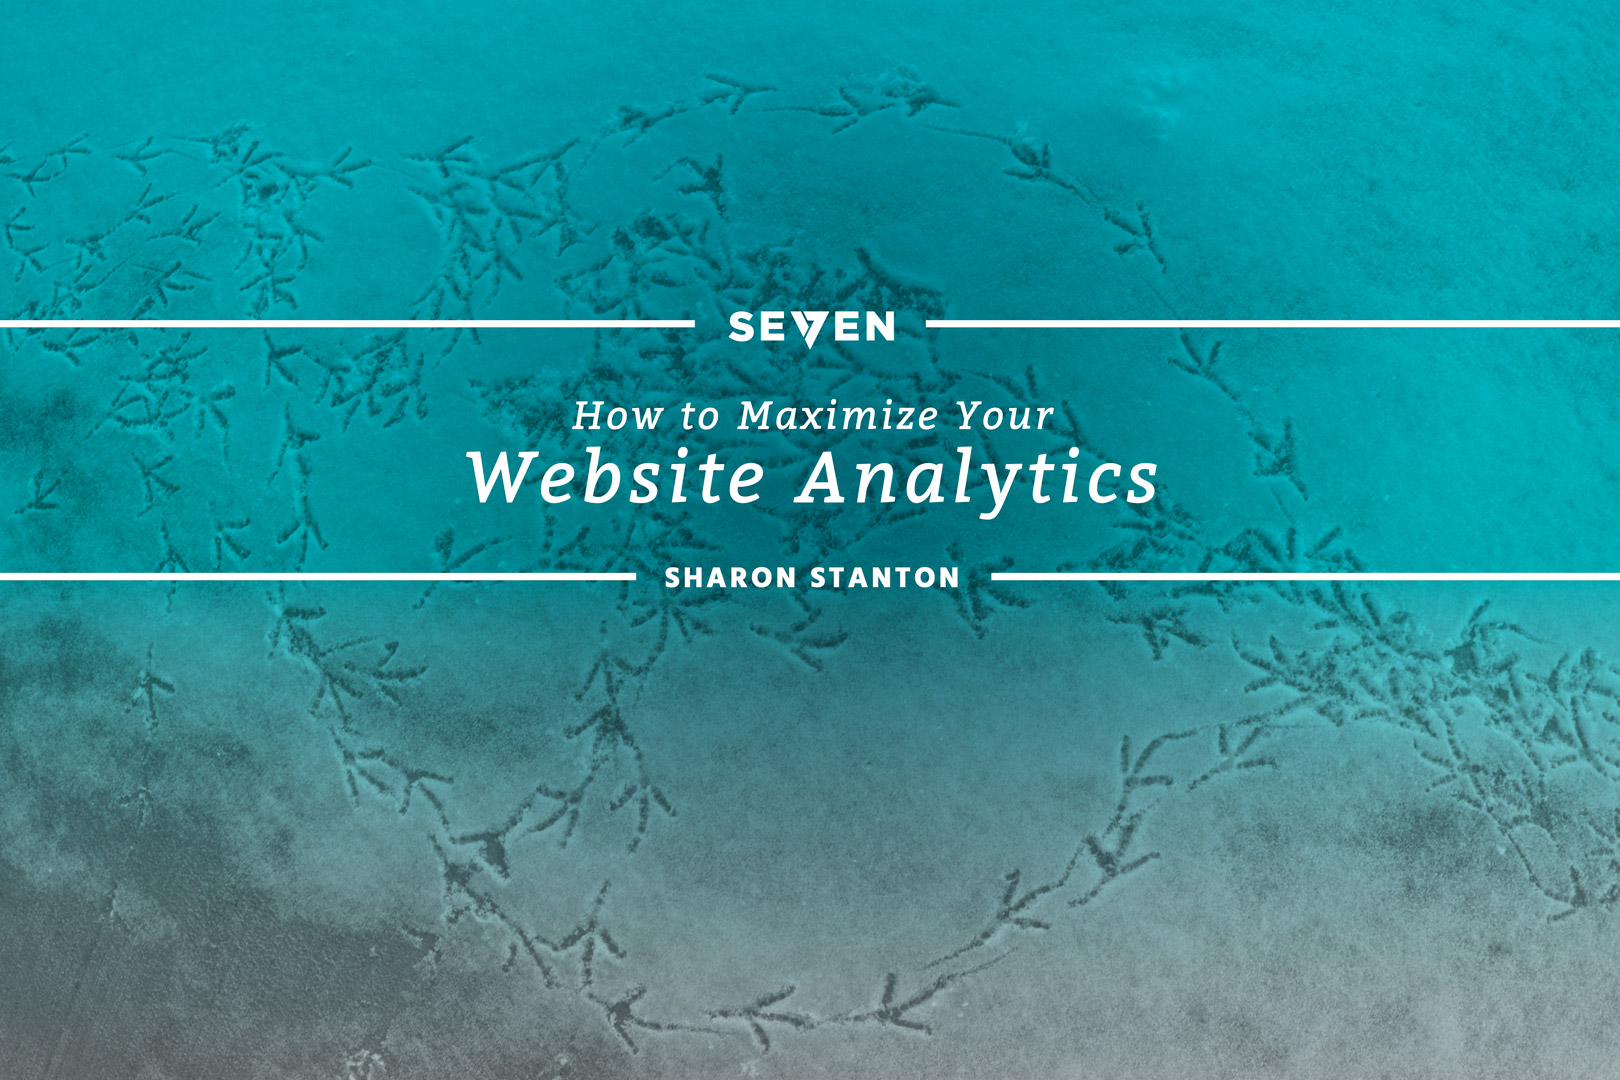 How to Maximize Your Website Analytics